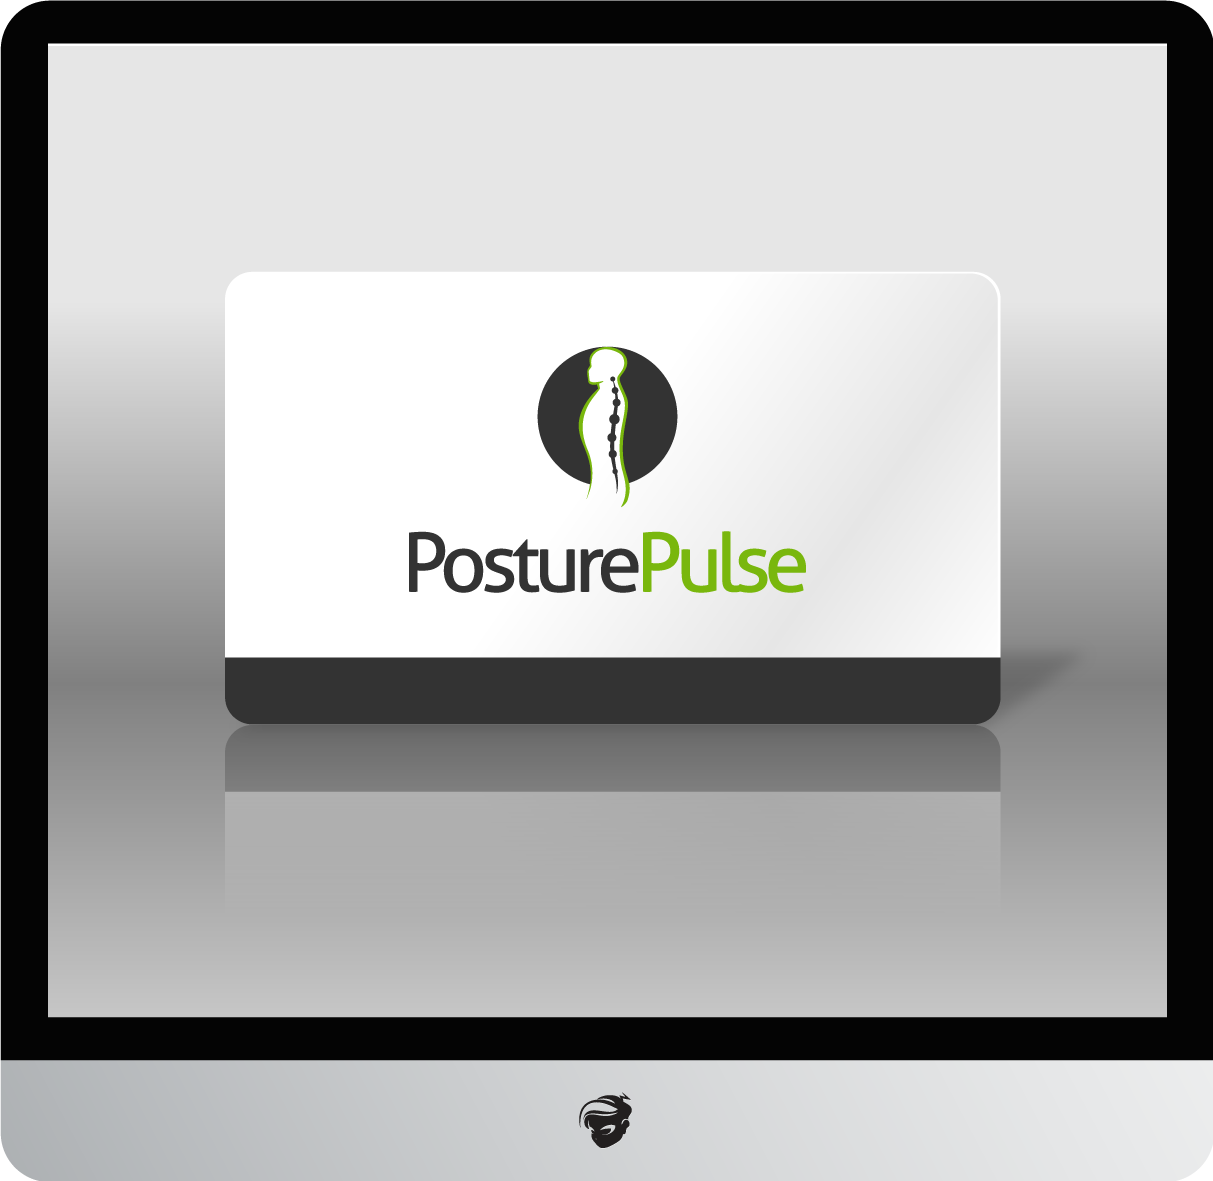 Logo Design by zesthar - Entry No. 107 in the Logo Design Contest Unique Logo Design Wanted for PosturePulse.